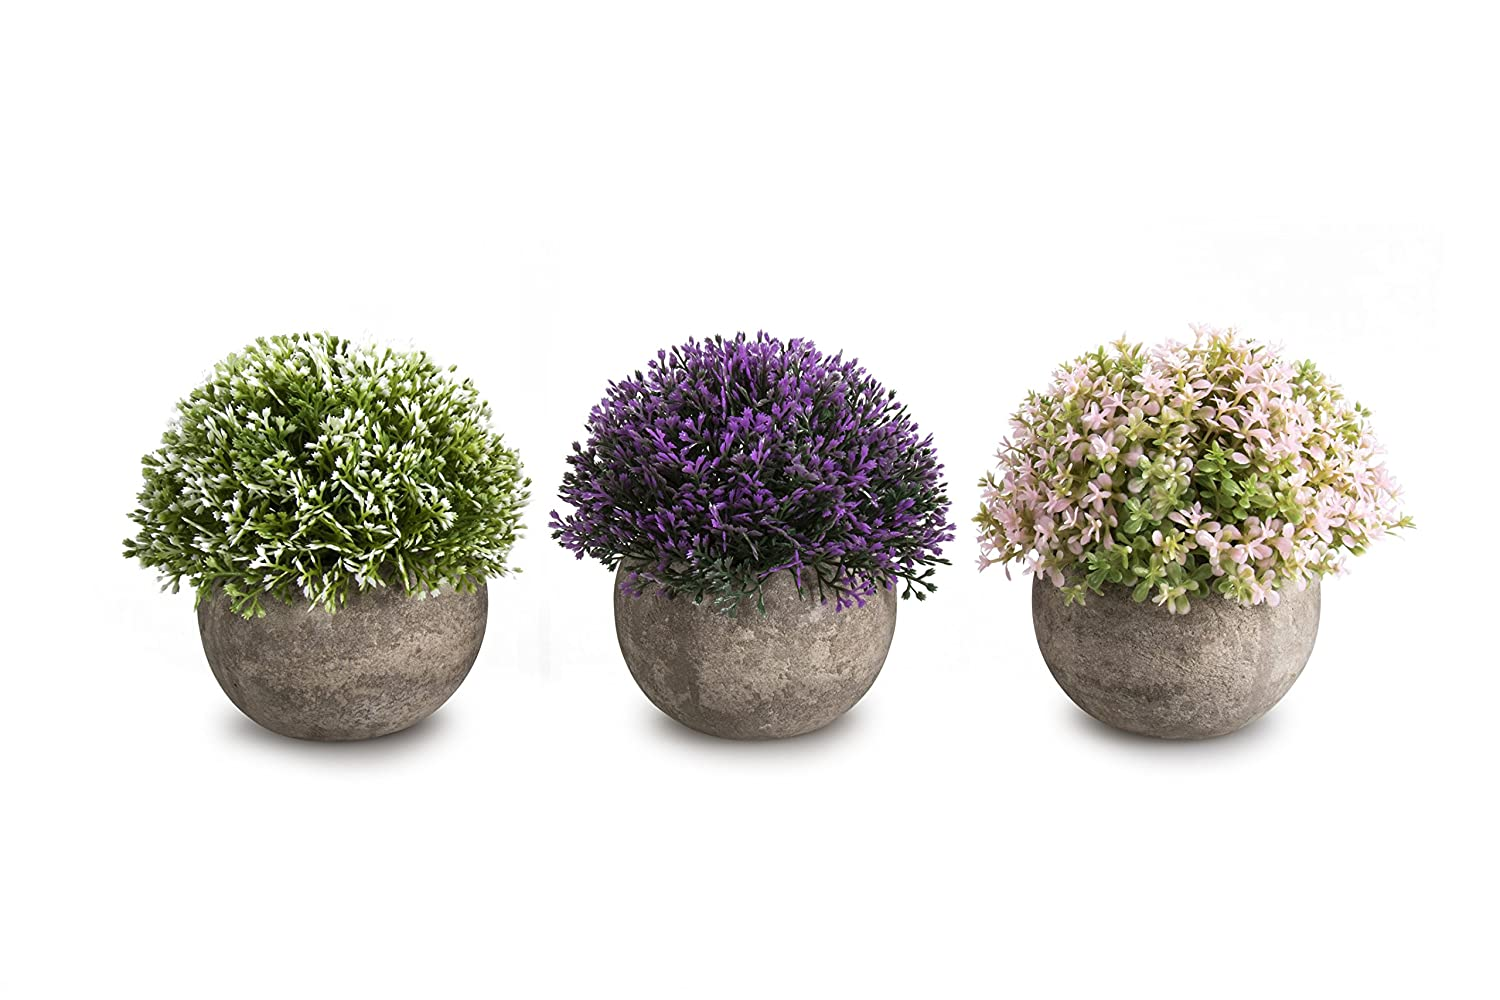 OPPS Mini Artificial Plants Plastic Fake Green Colorful Flower Topiary Shrubs With Gray Pot For Home Décor – Set of 3